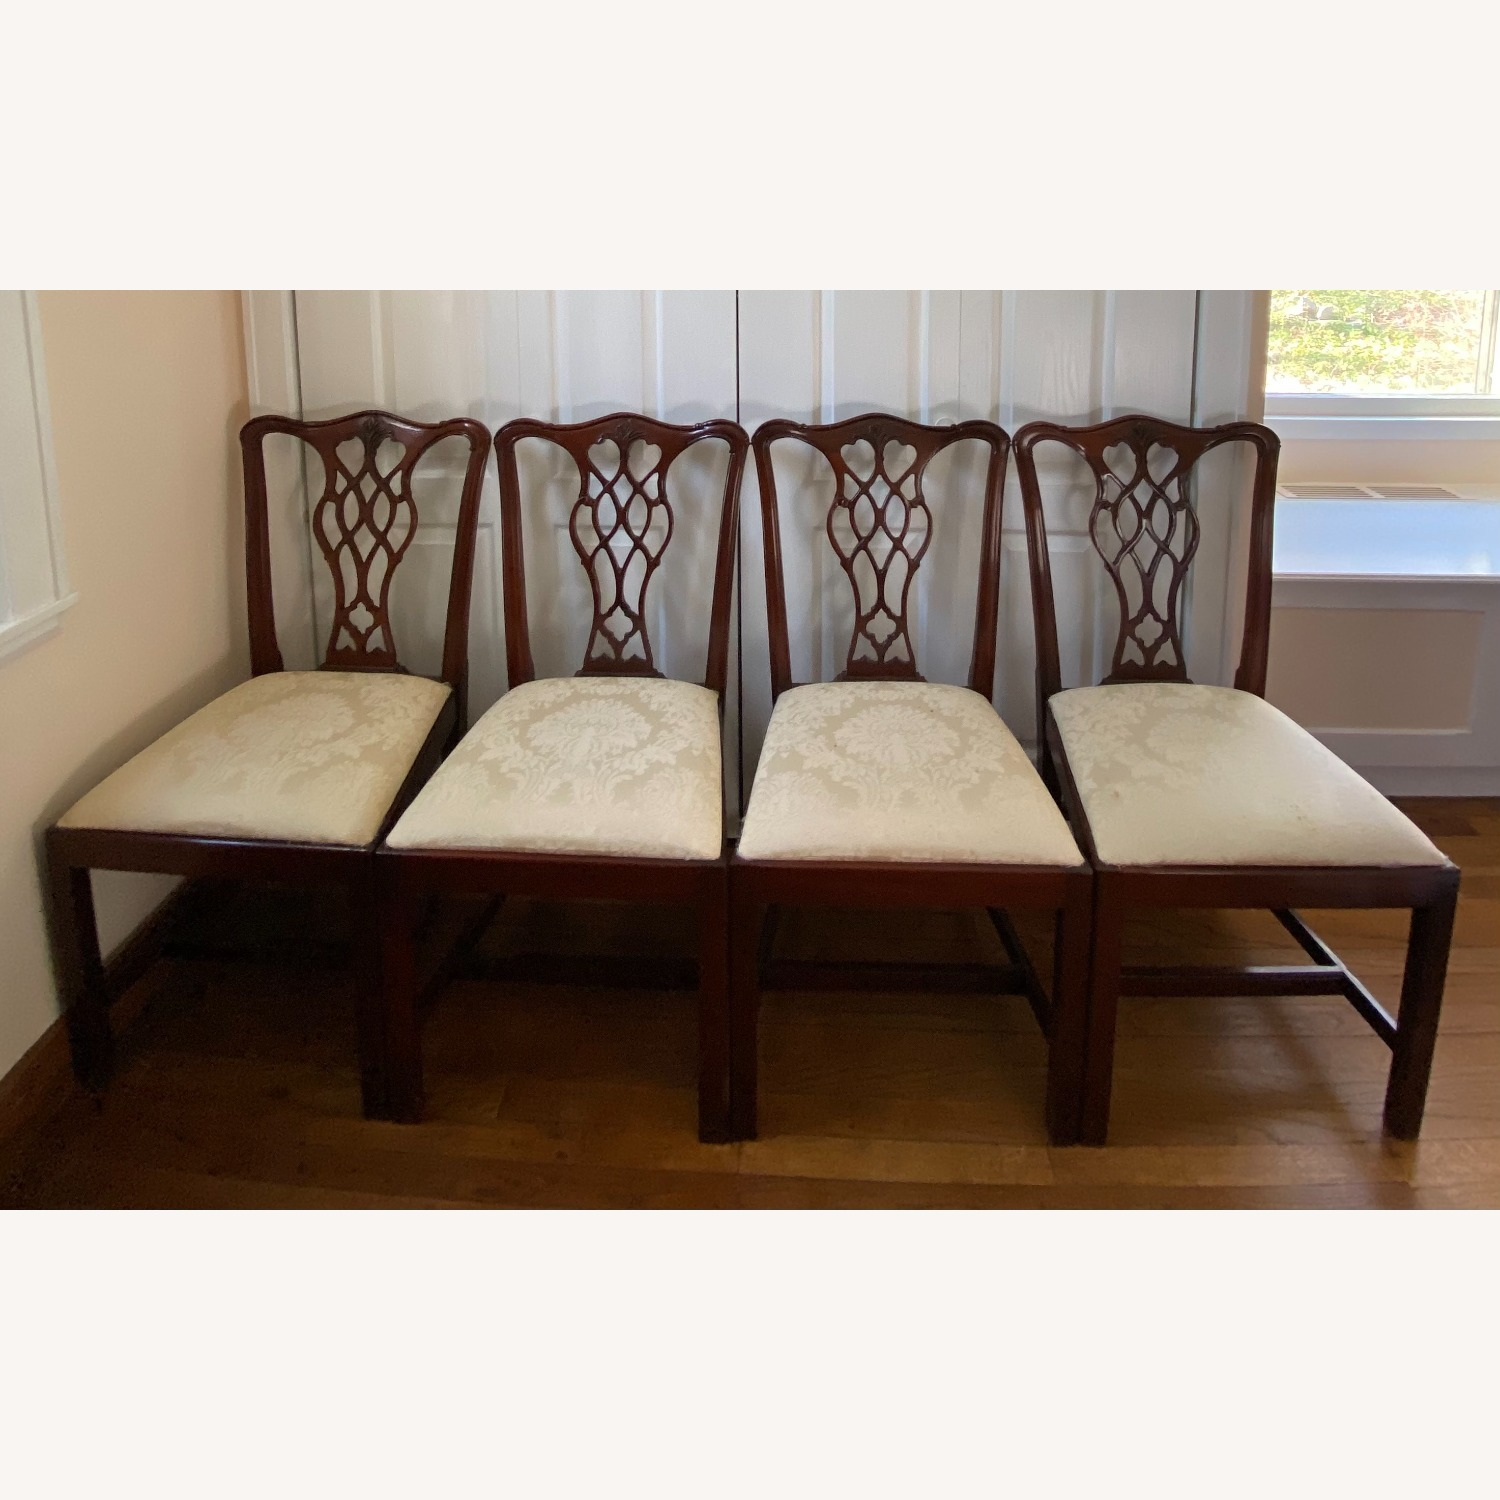 4 Councill Mahogany Chippendale Dining Chairs - image-9